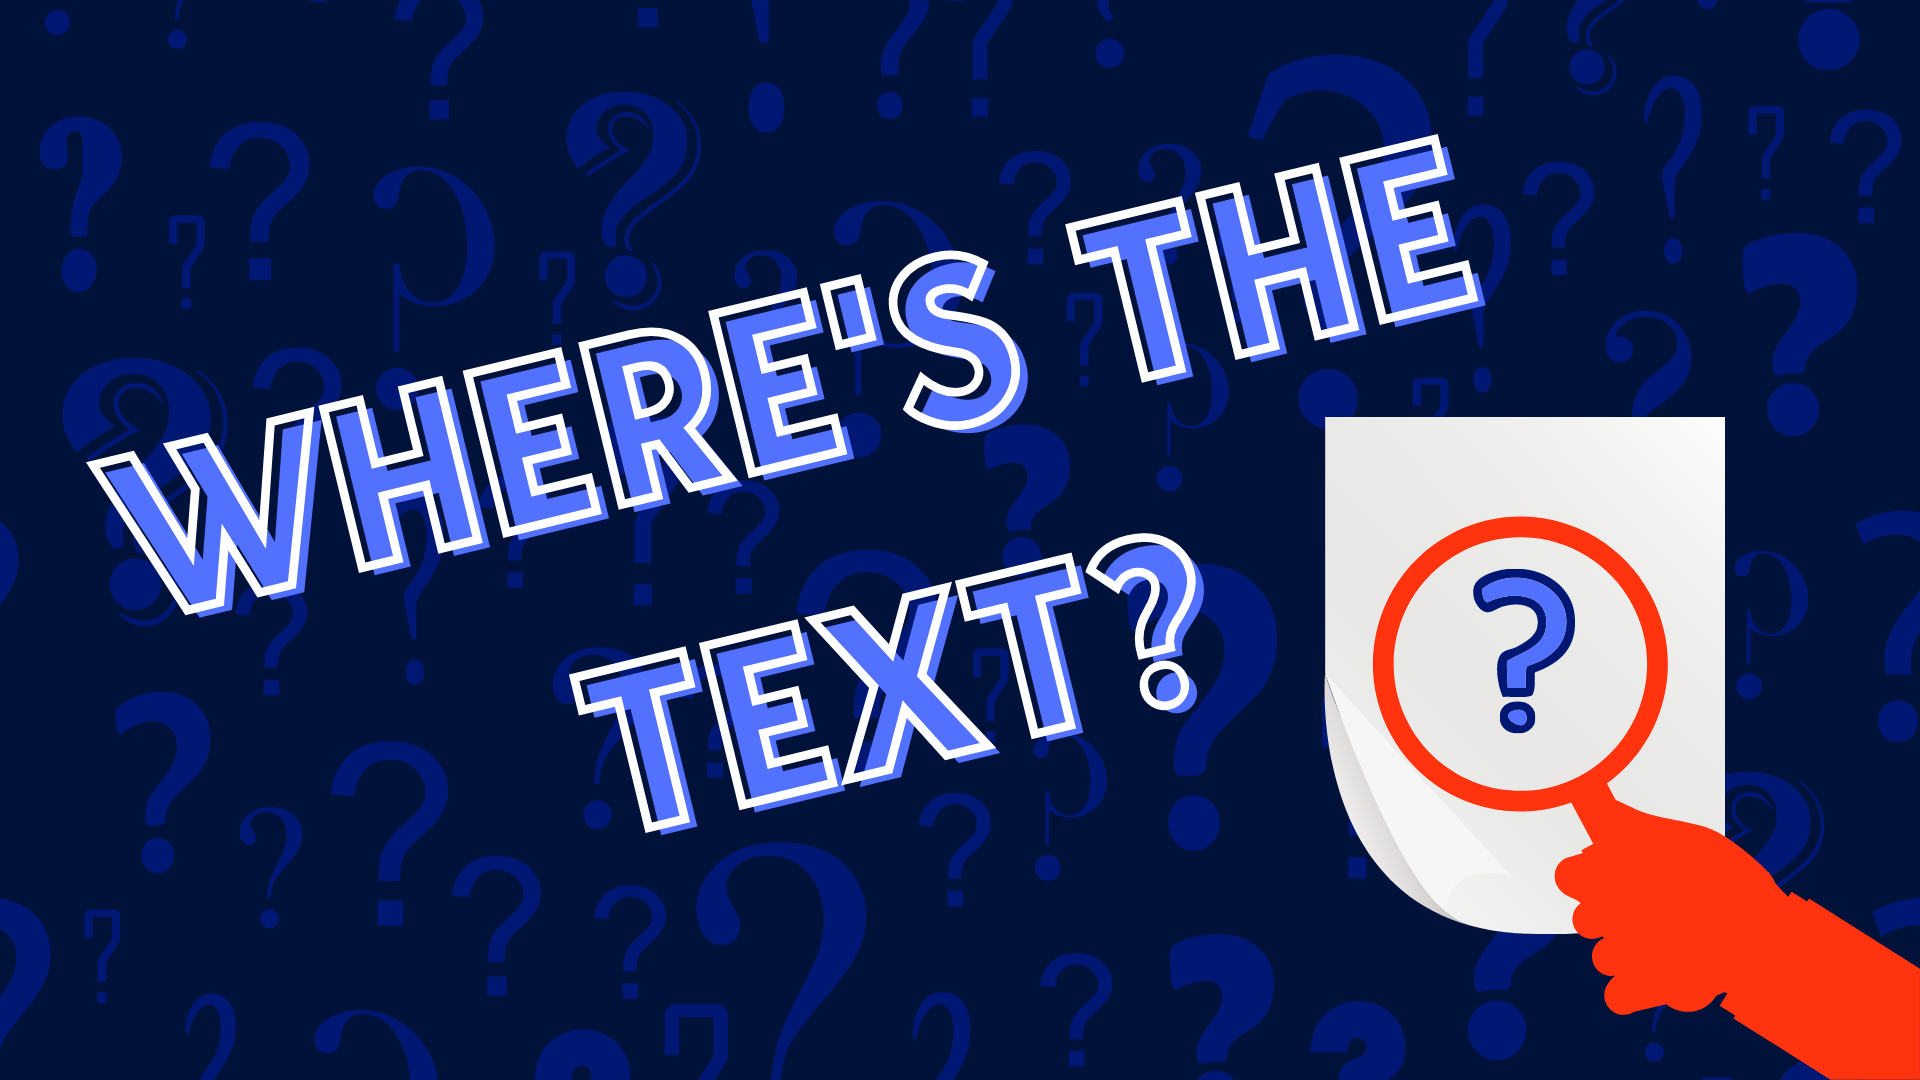 Text where is the text? with an image of a magnifying glass over a document with a question mark on it